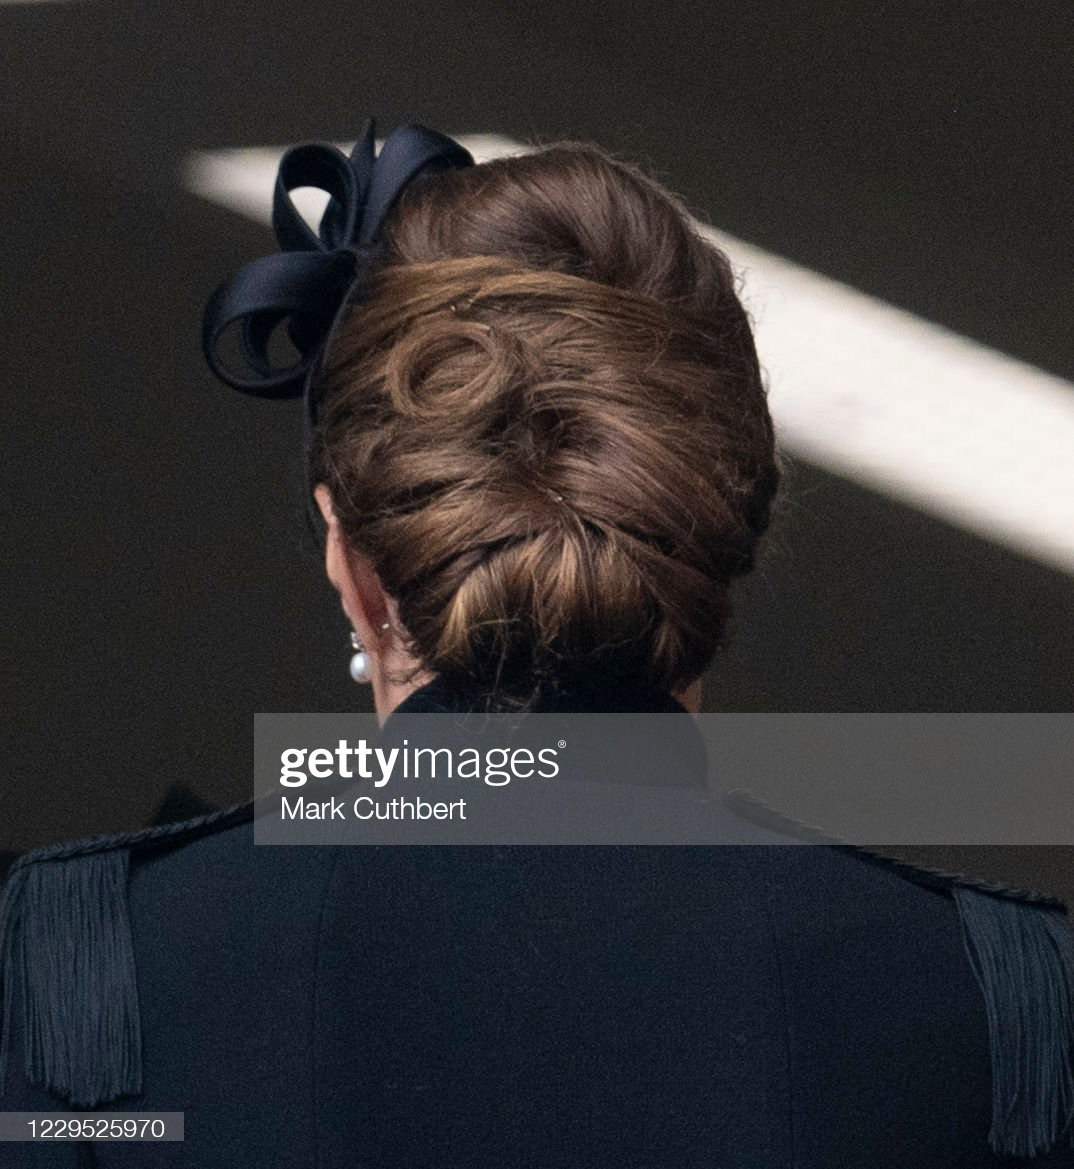 https://media.gettyimages.com/photos/catherine-duchess-of-cambridge-attends-the-annual-remembrance-sunday-picture-id1229525970?s=2048x2048